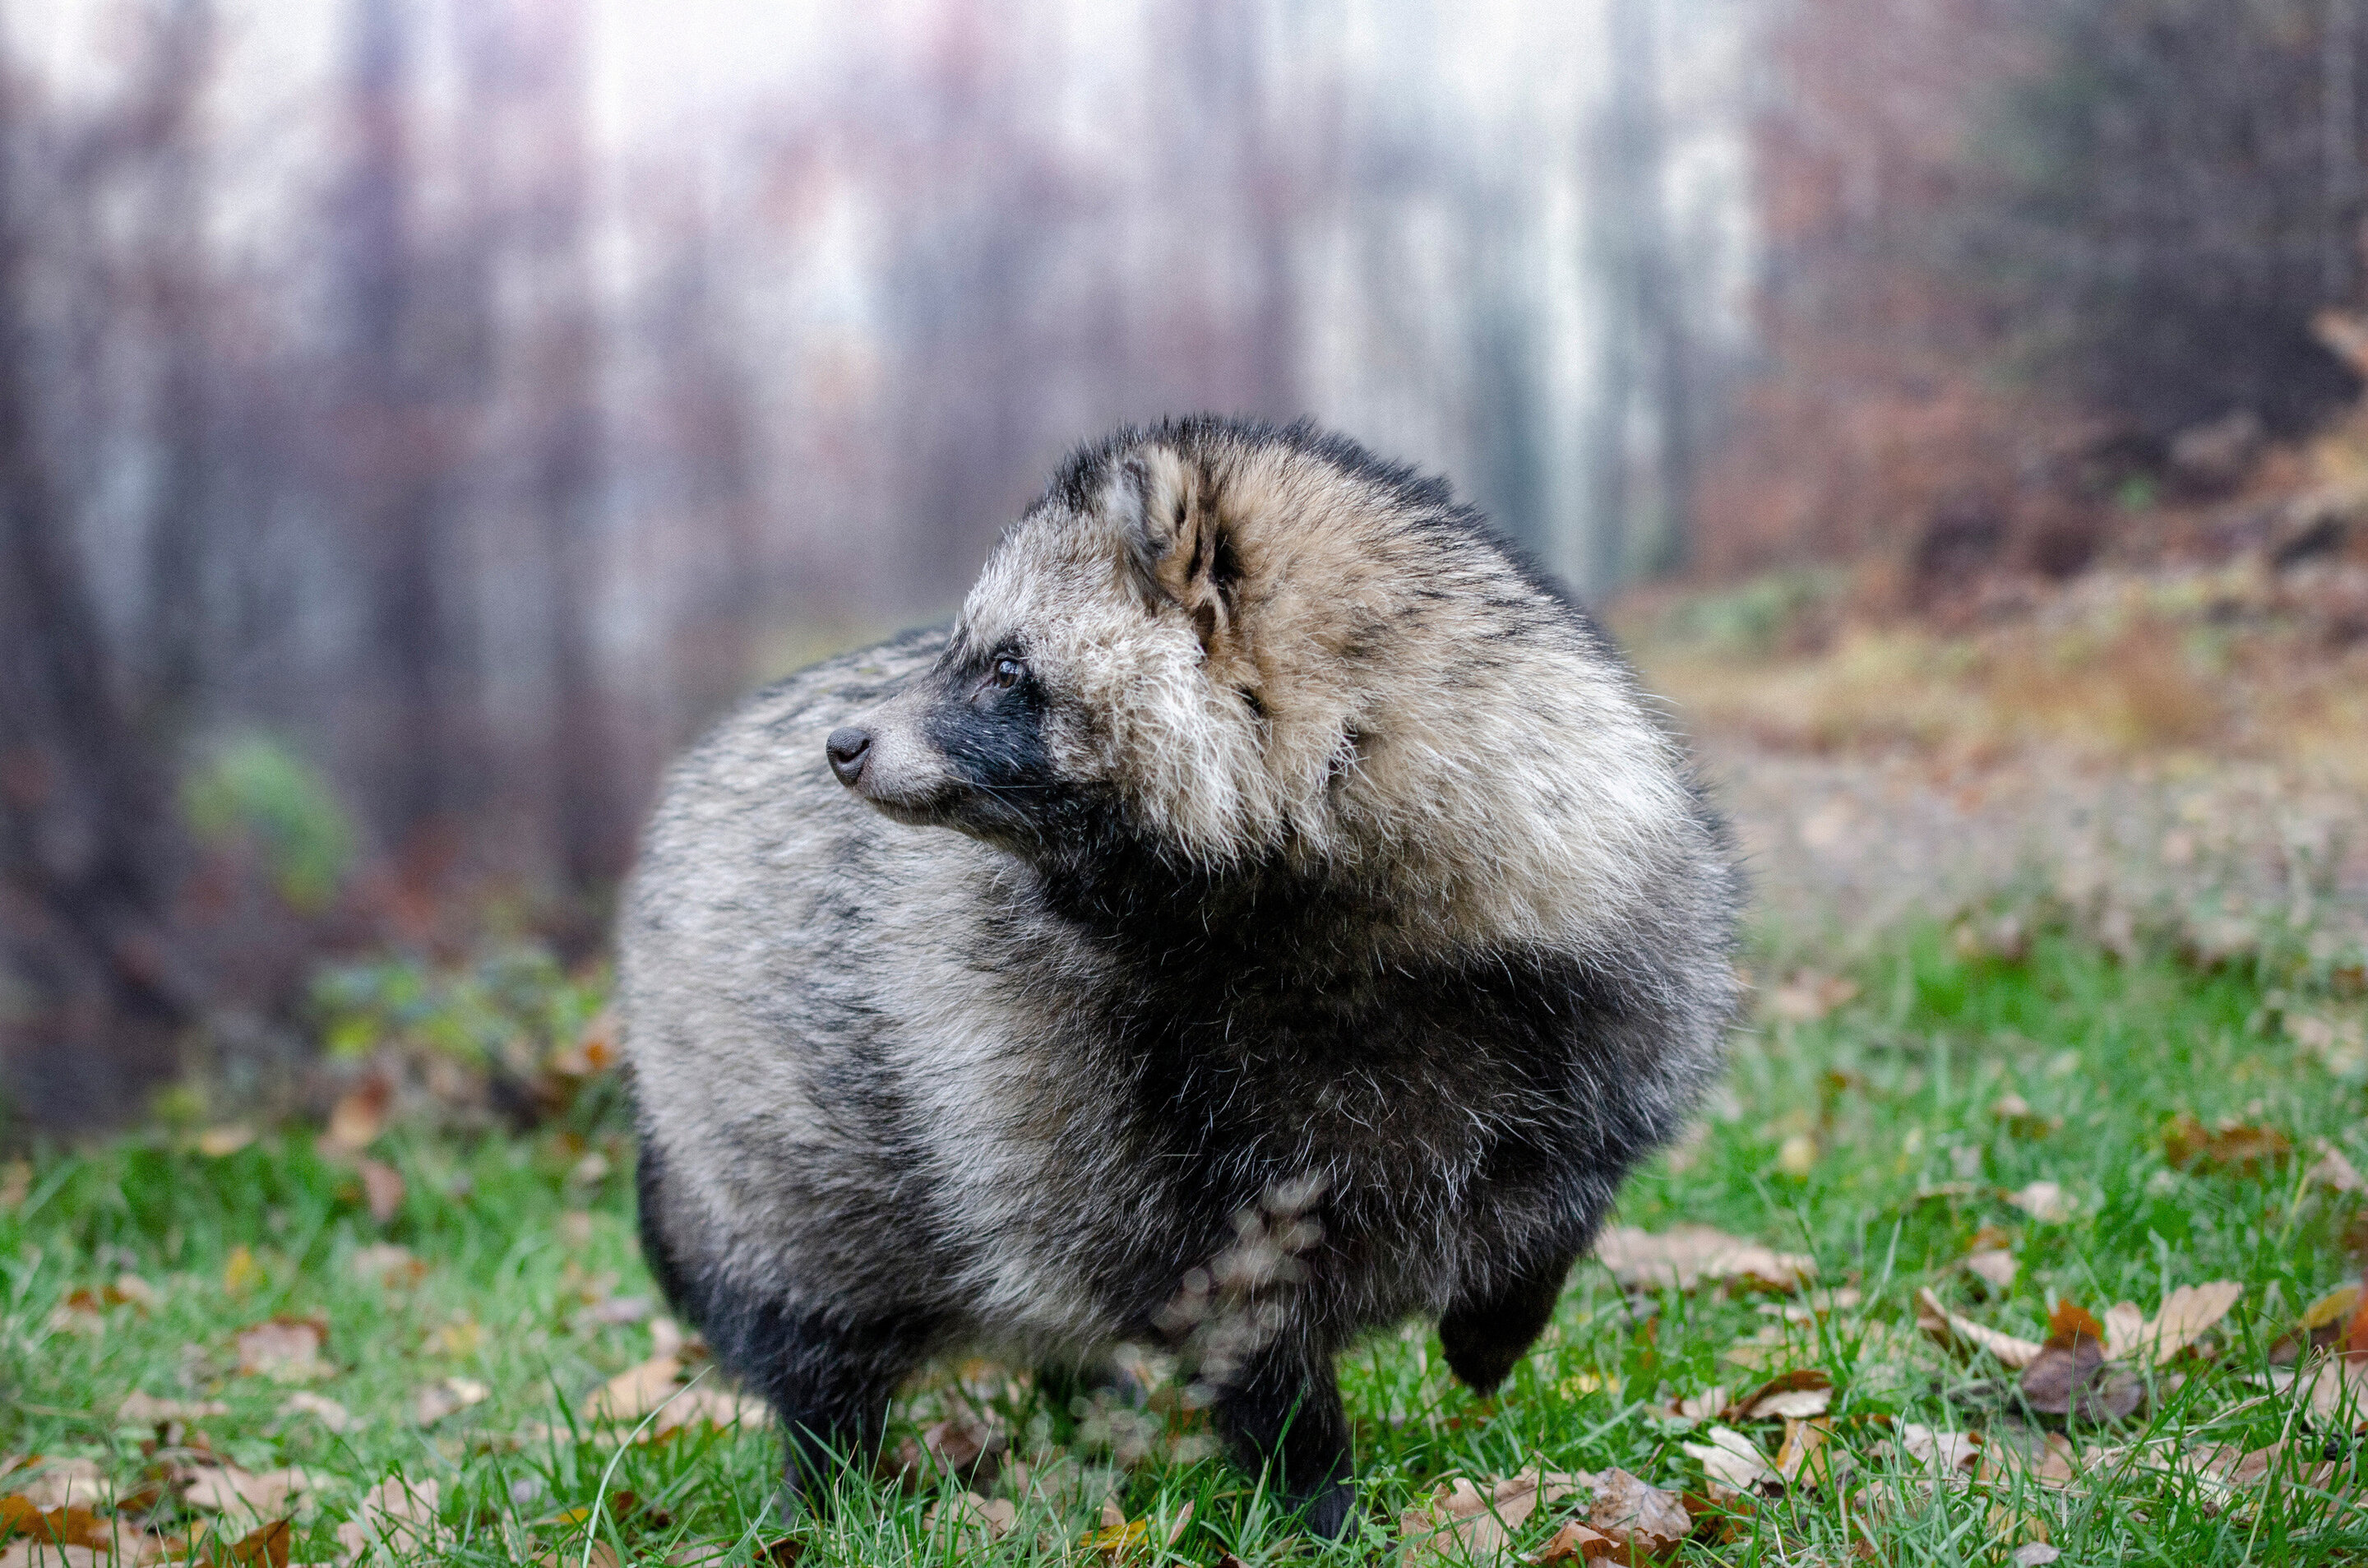 Raccoons and raccoon dogs are expected to expand their ranges in Europe